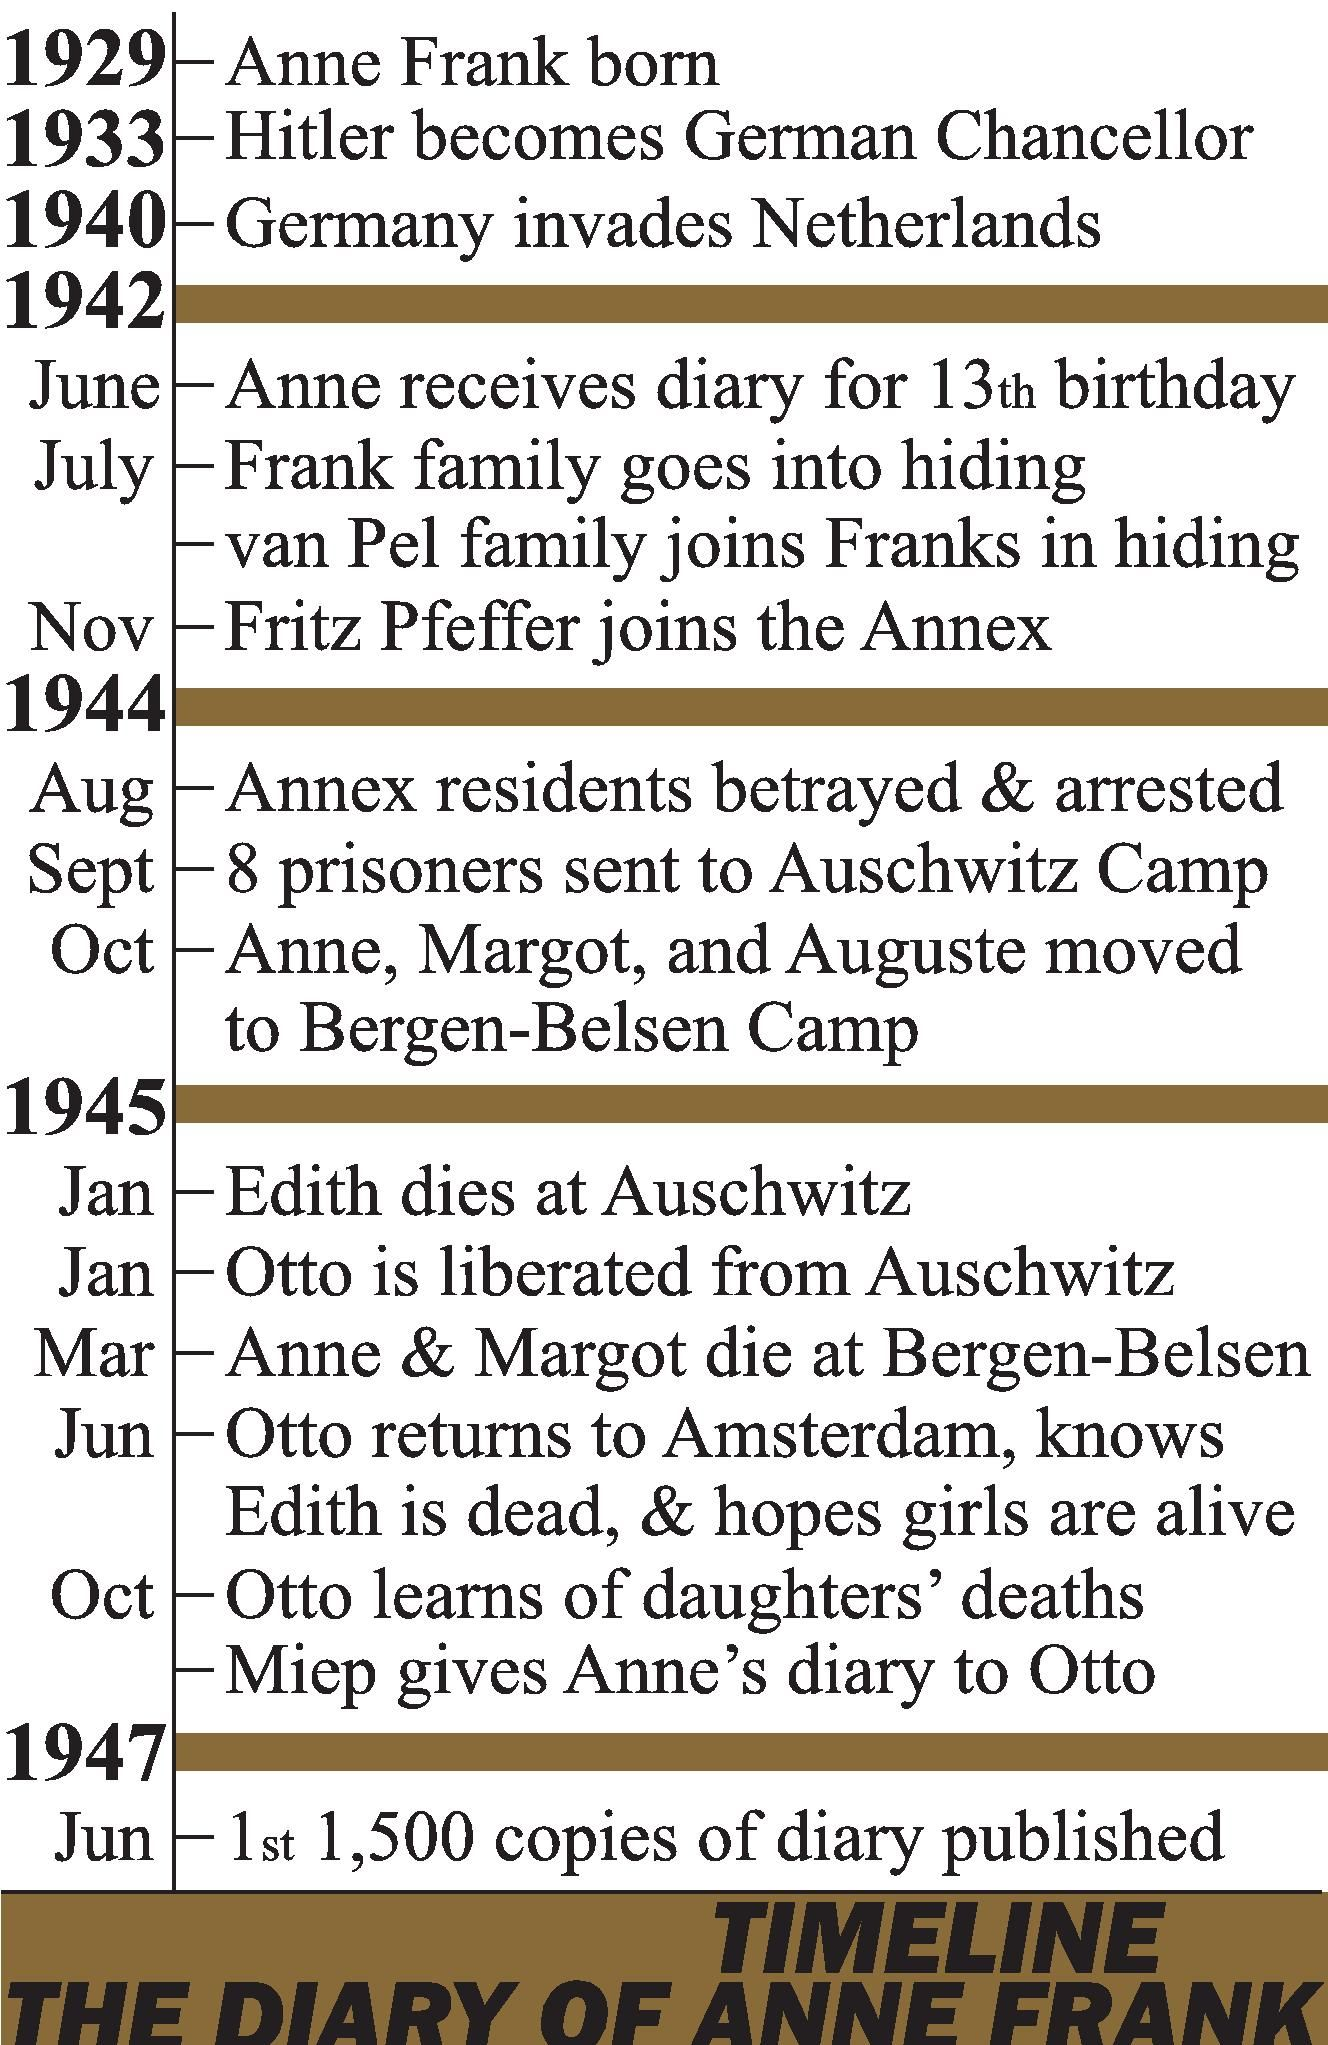 Timeline of holocaust